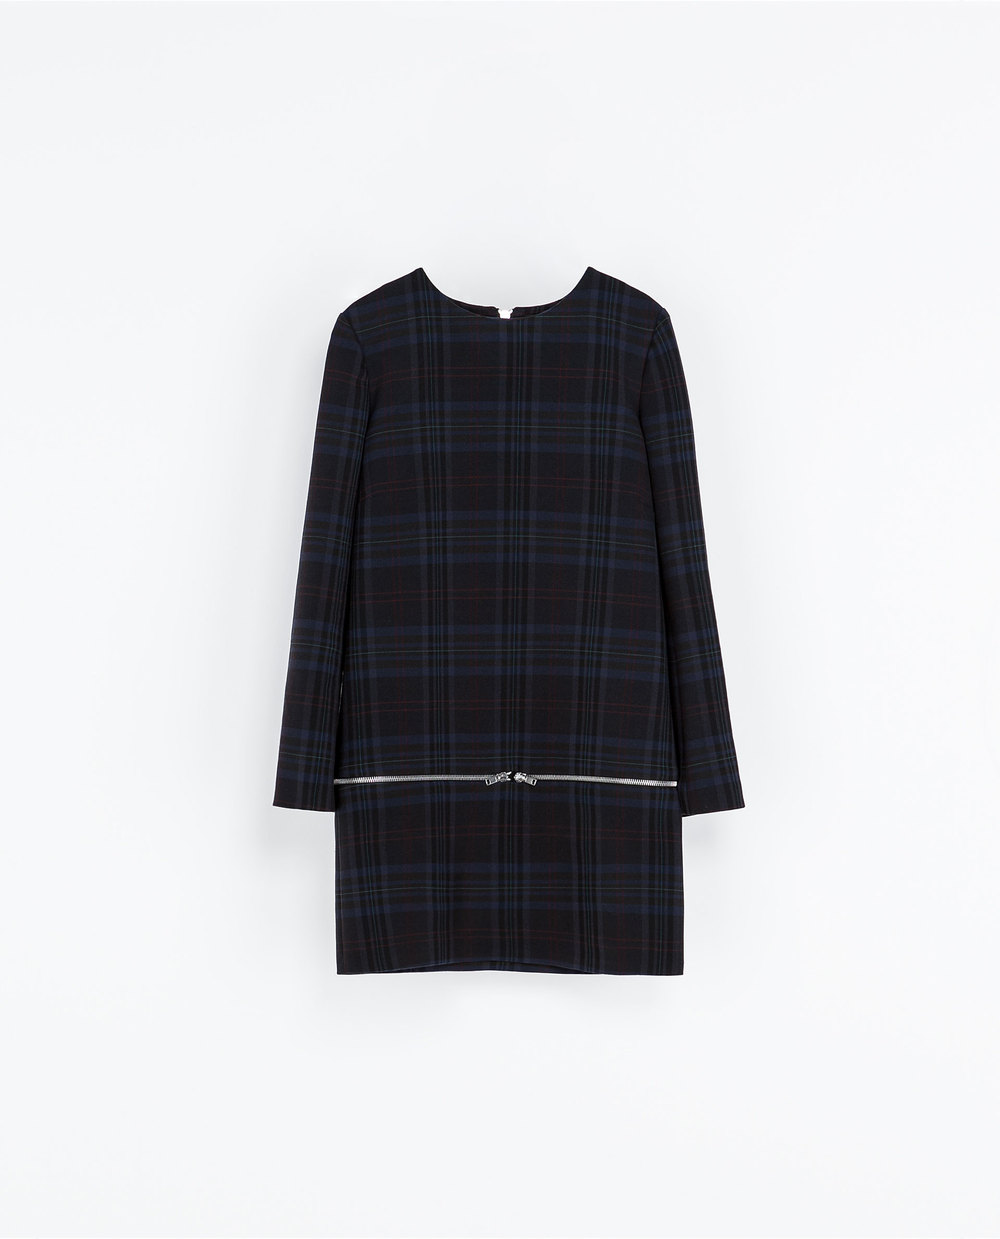 Checkered Dress With Zips. ZARA.COM Price: $119.00 On sale $39.99